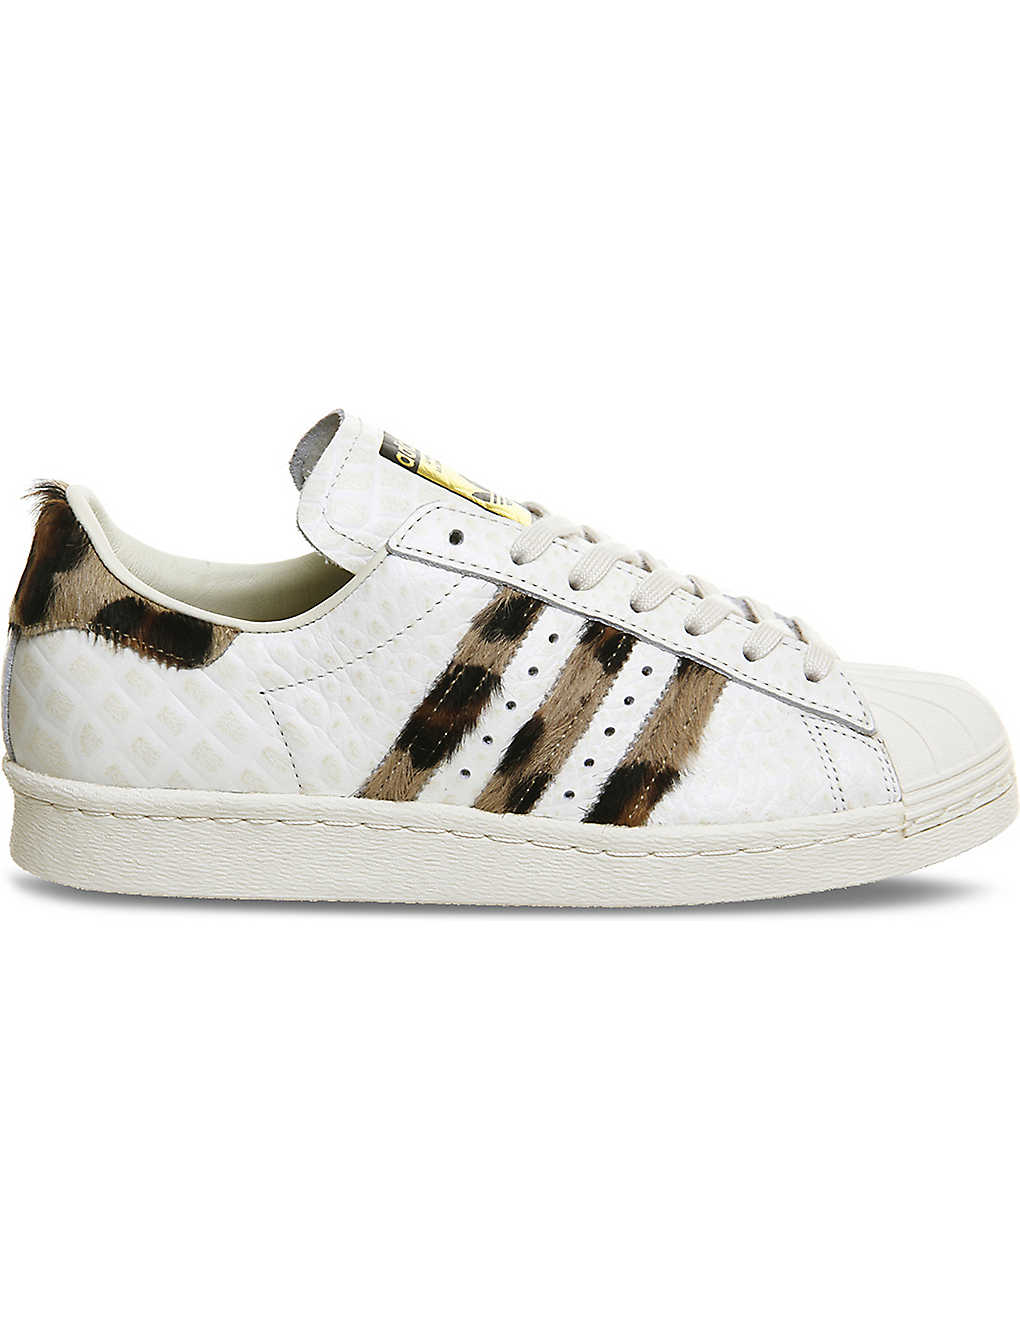 outlet store 4a3e0 6c767 ADIDAS - Superstar 80s snake-embossed leather trainers ...